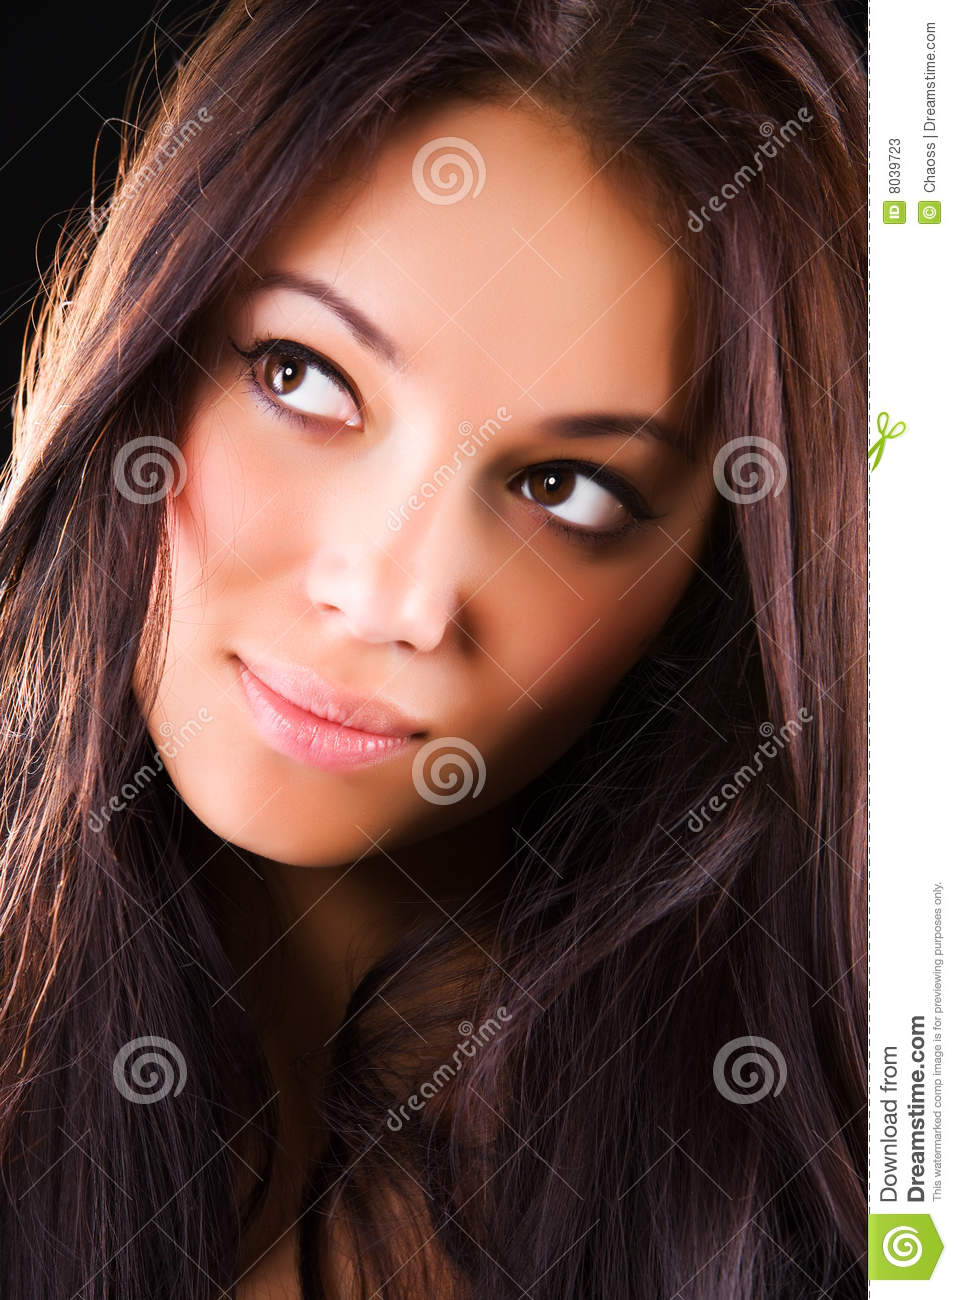 Brunette portrait woman young